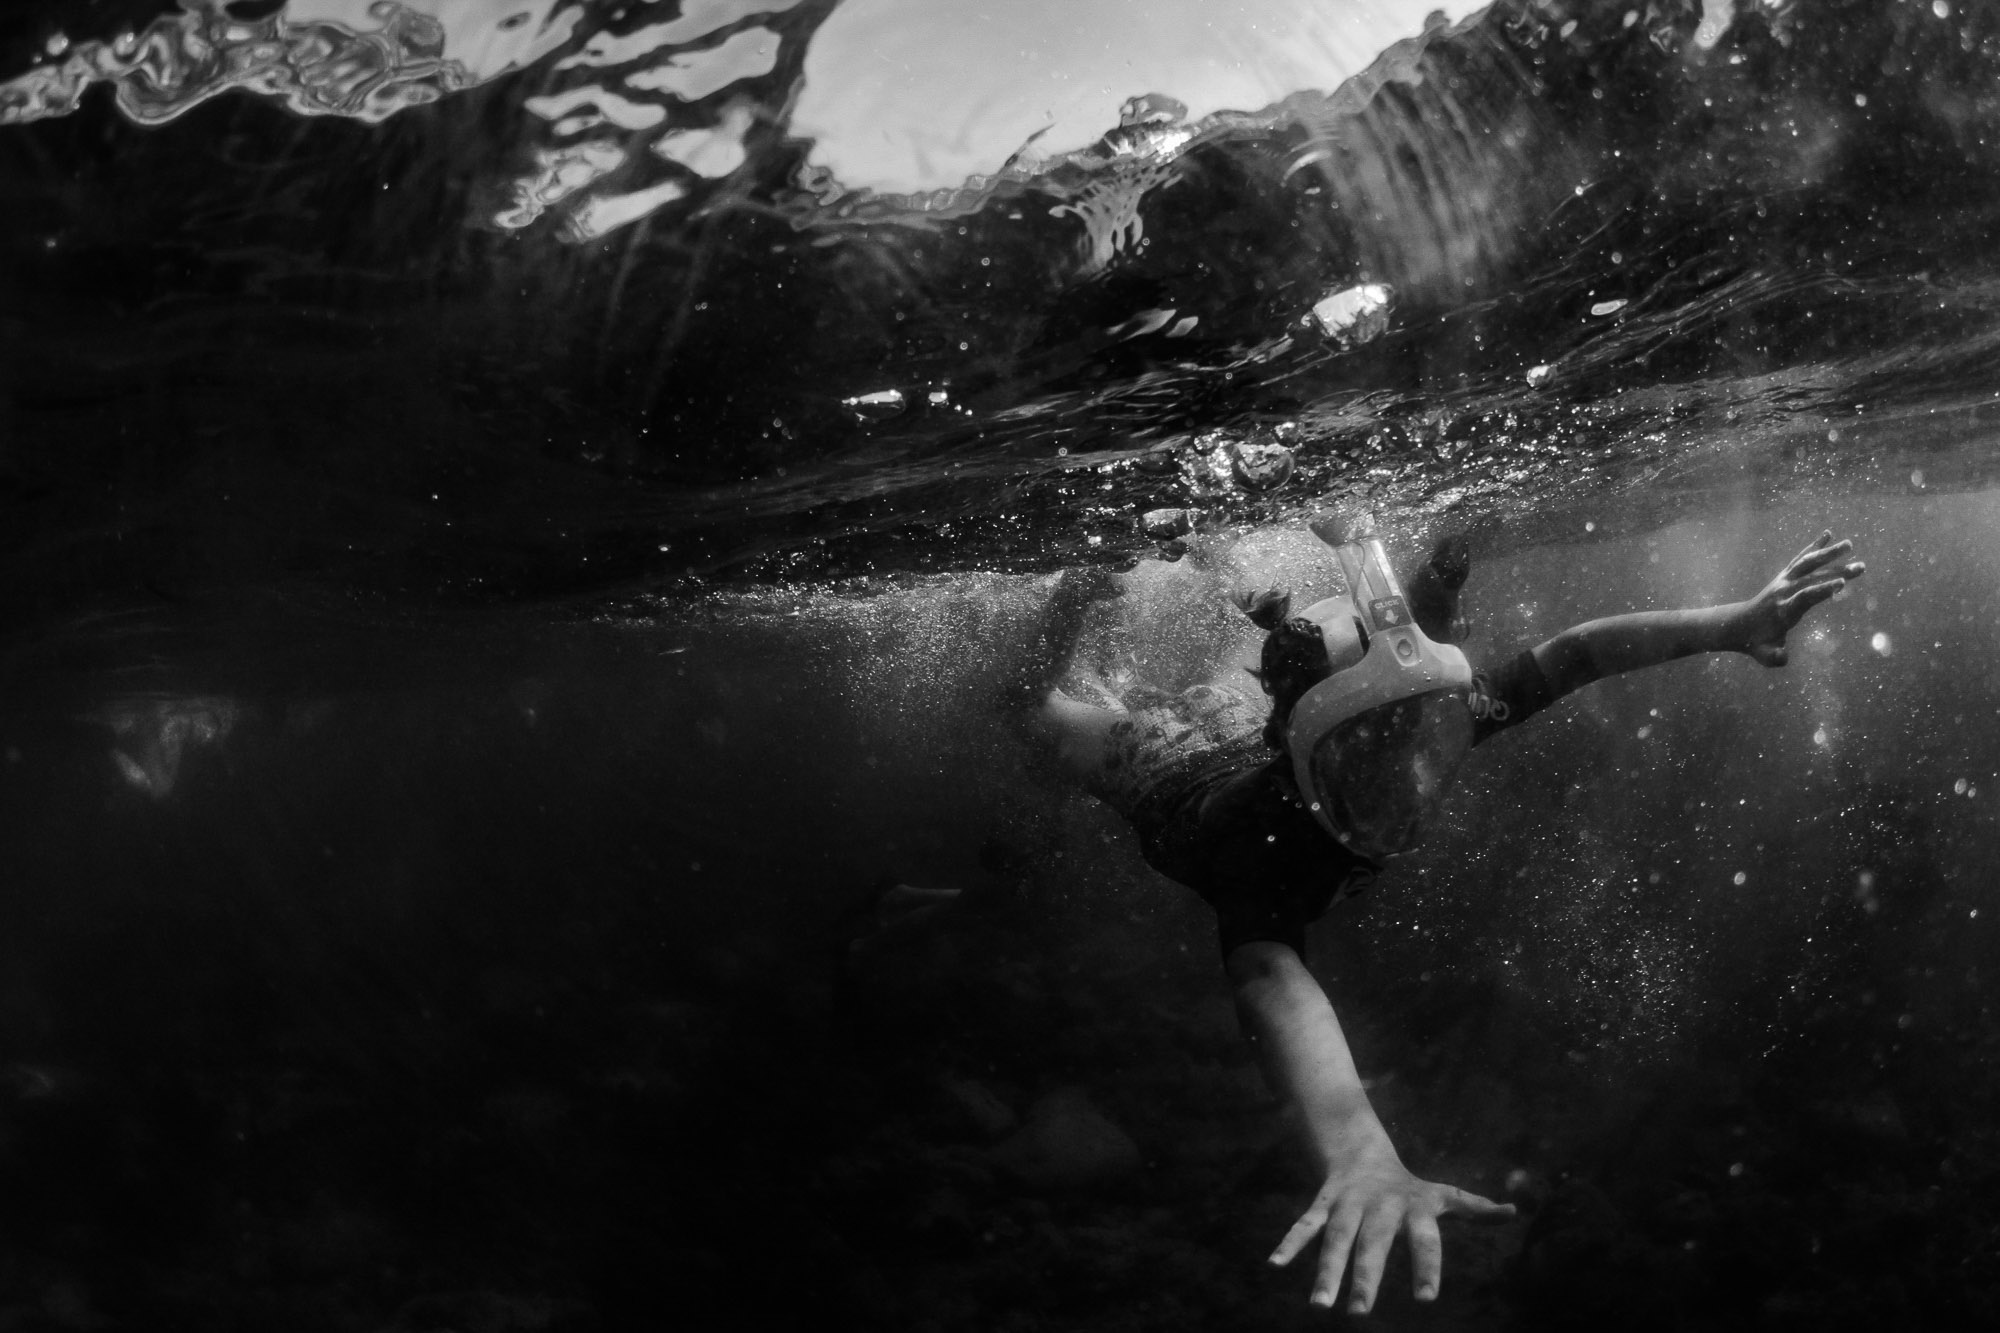 Documentary family photography. GoPro photo swimming in the ocean in Spain. Familiefotografie door Sandra Stokmans Fotografie